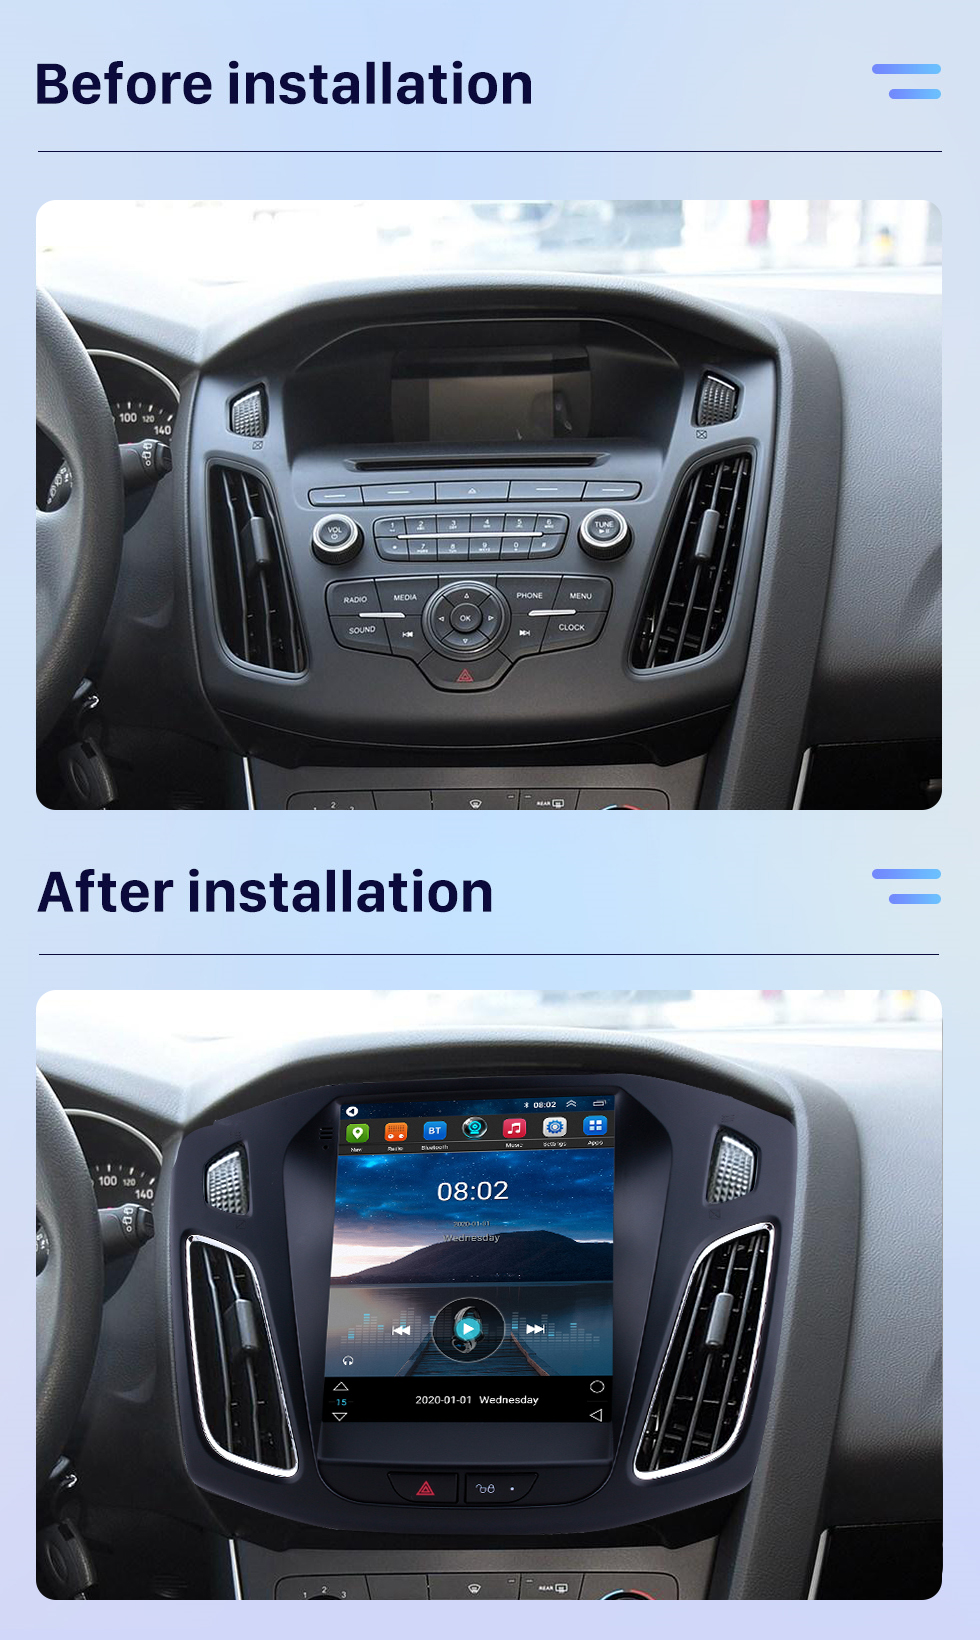 Seicane Android 10.0 2012 2013 2014 2015 Ford Focus 9.7 inch Tesla Style HD Touchscreen Car Stereo Radio Head Unit GPS Navigation Bluetooth Support Steering Wheel Control USB WIFI OBD2 Rearview Camera